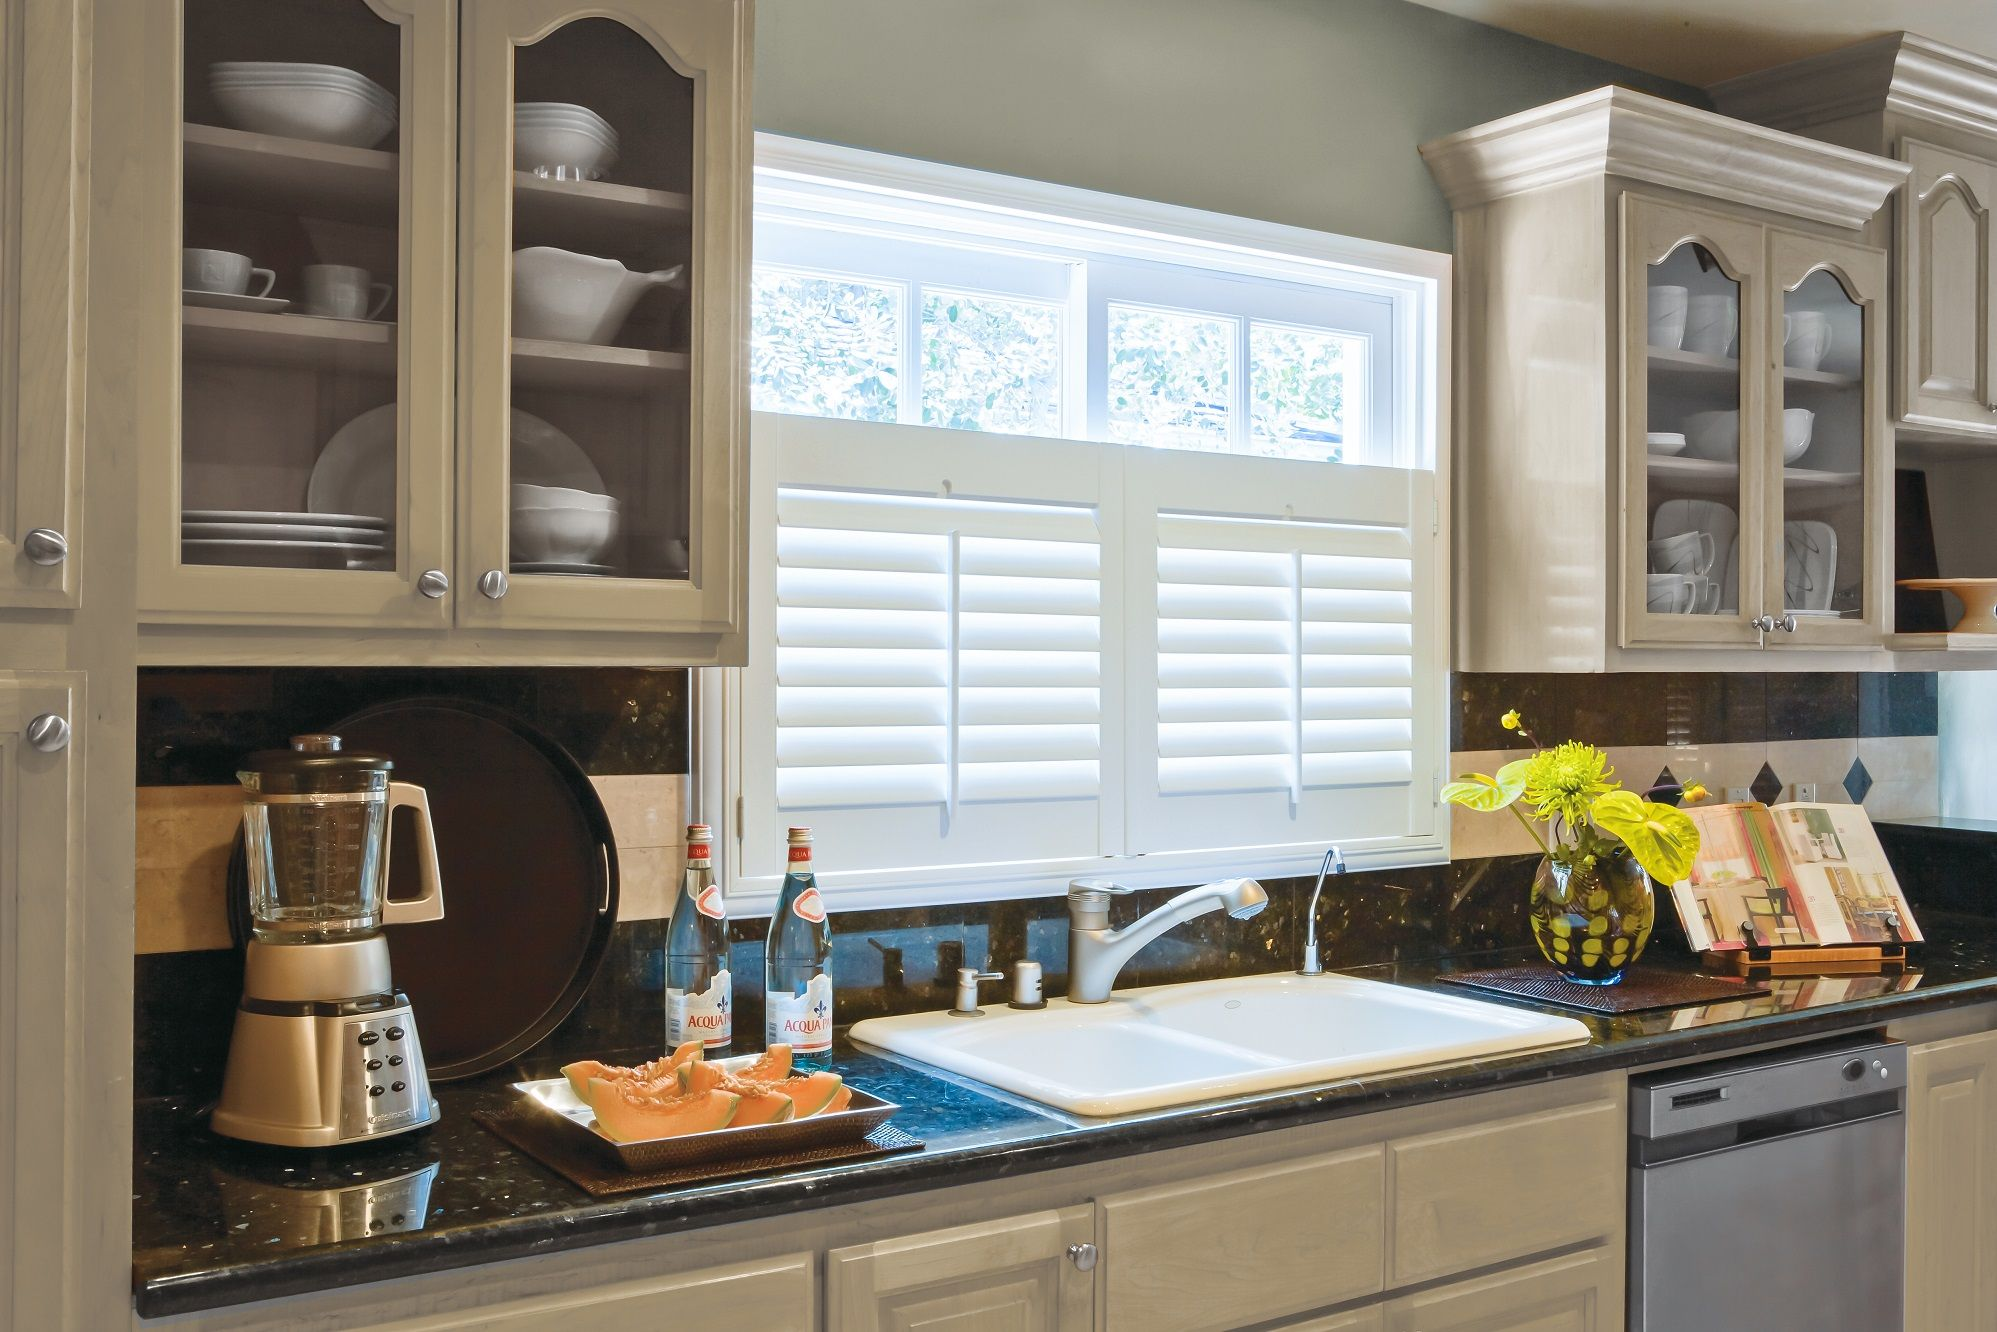 Cafe style shutters in kitchen cafe style shutters cafe